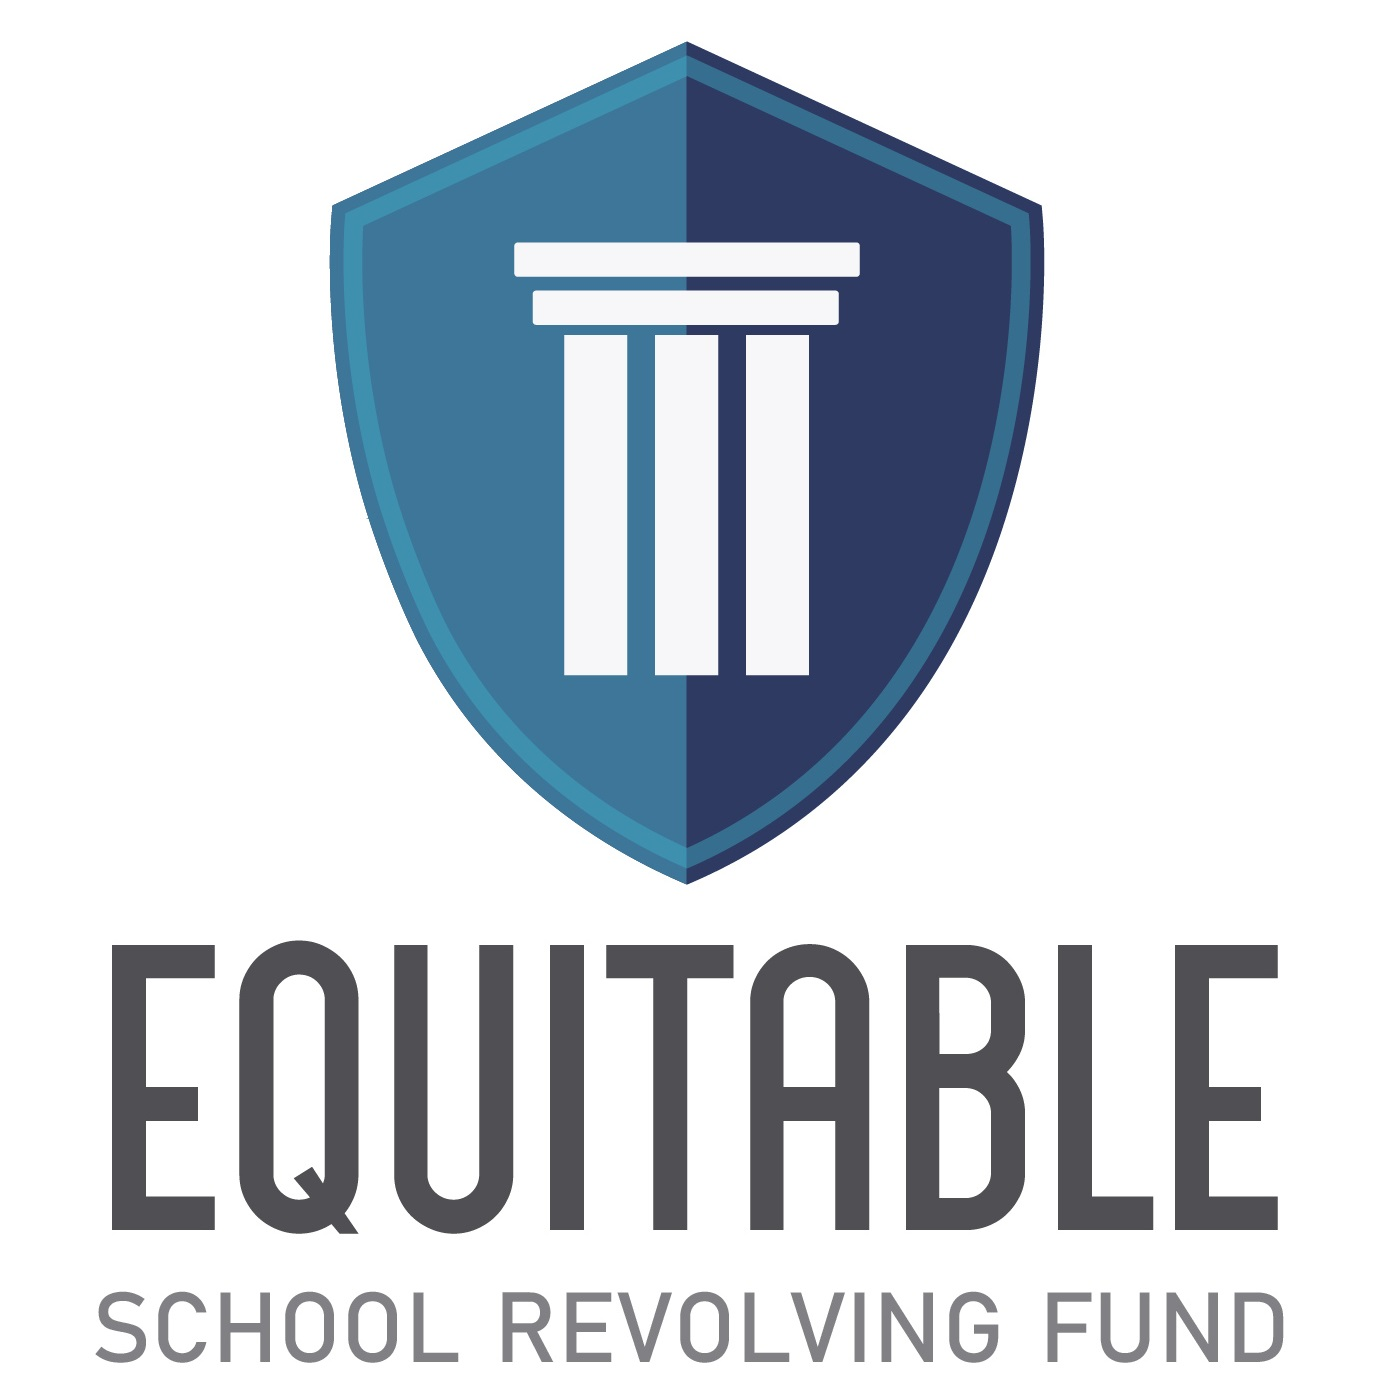 Equitable School Revolving Fund - Official Seal or Logo